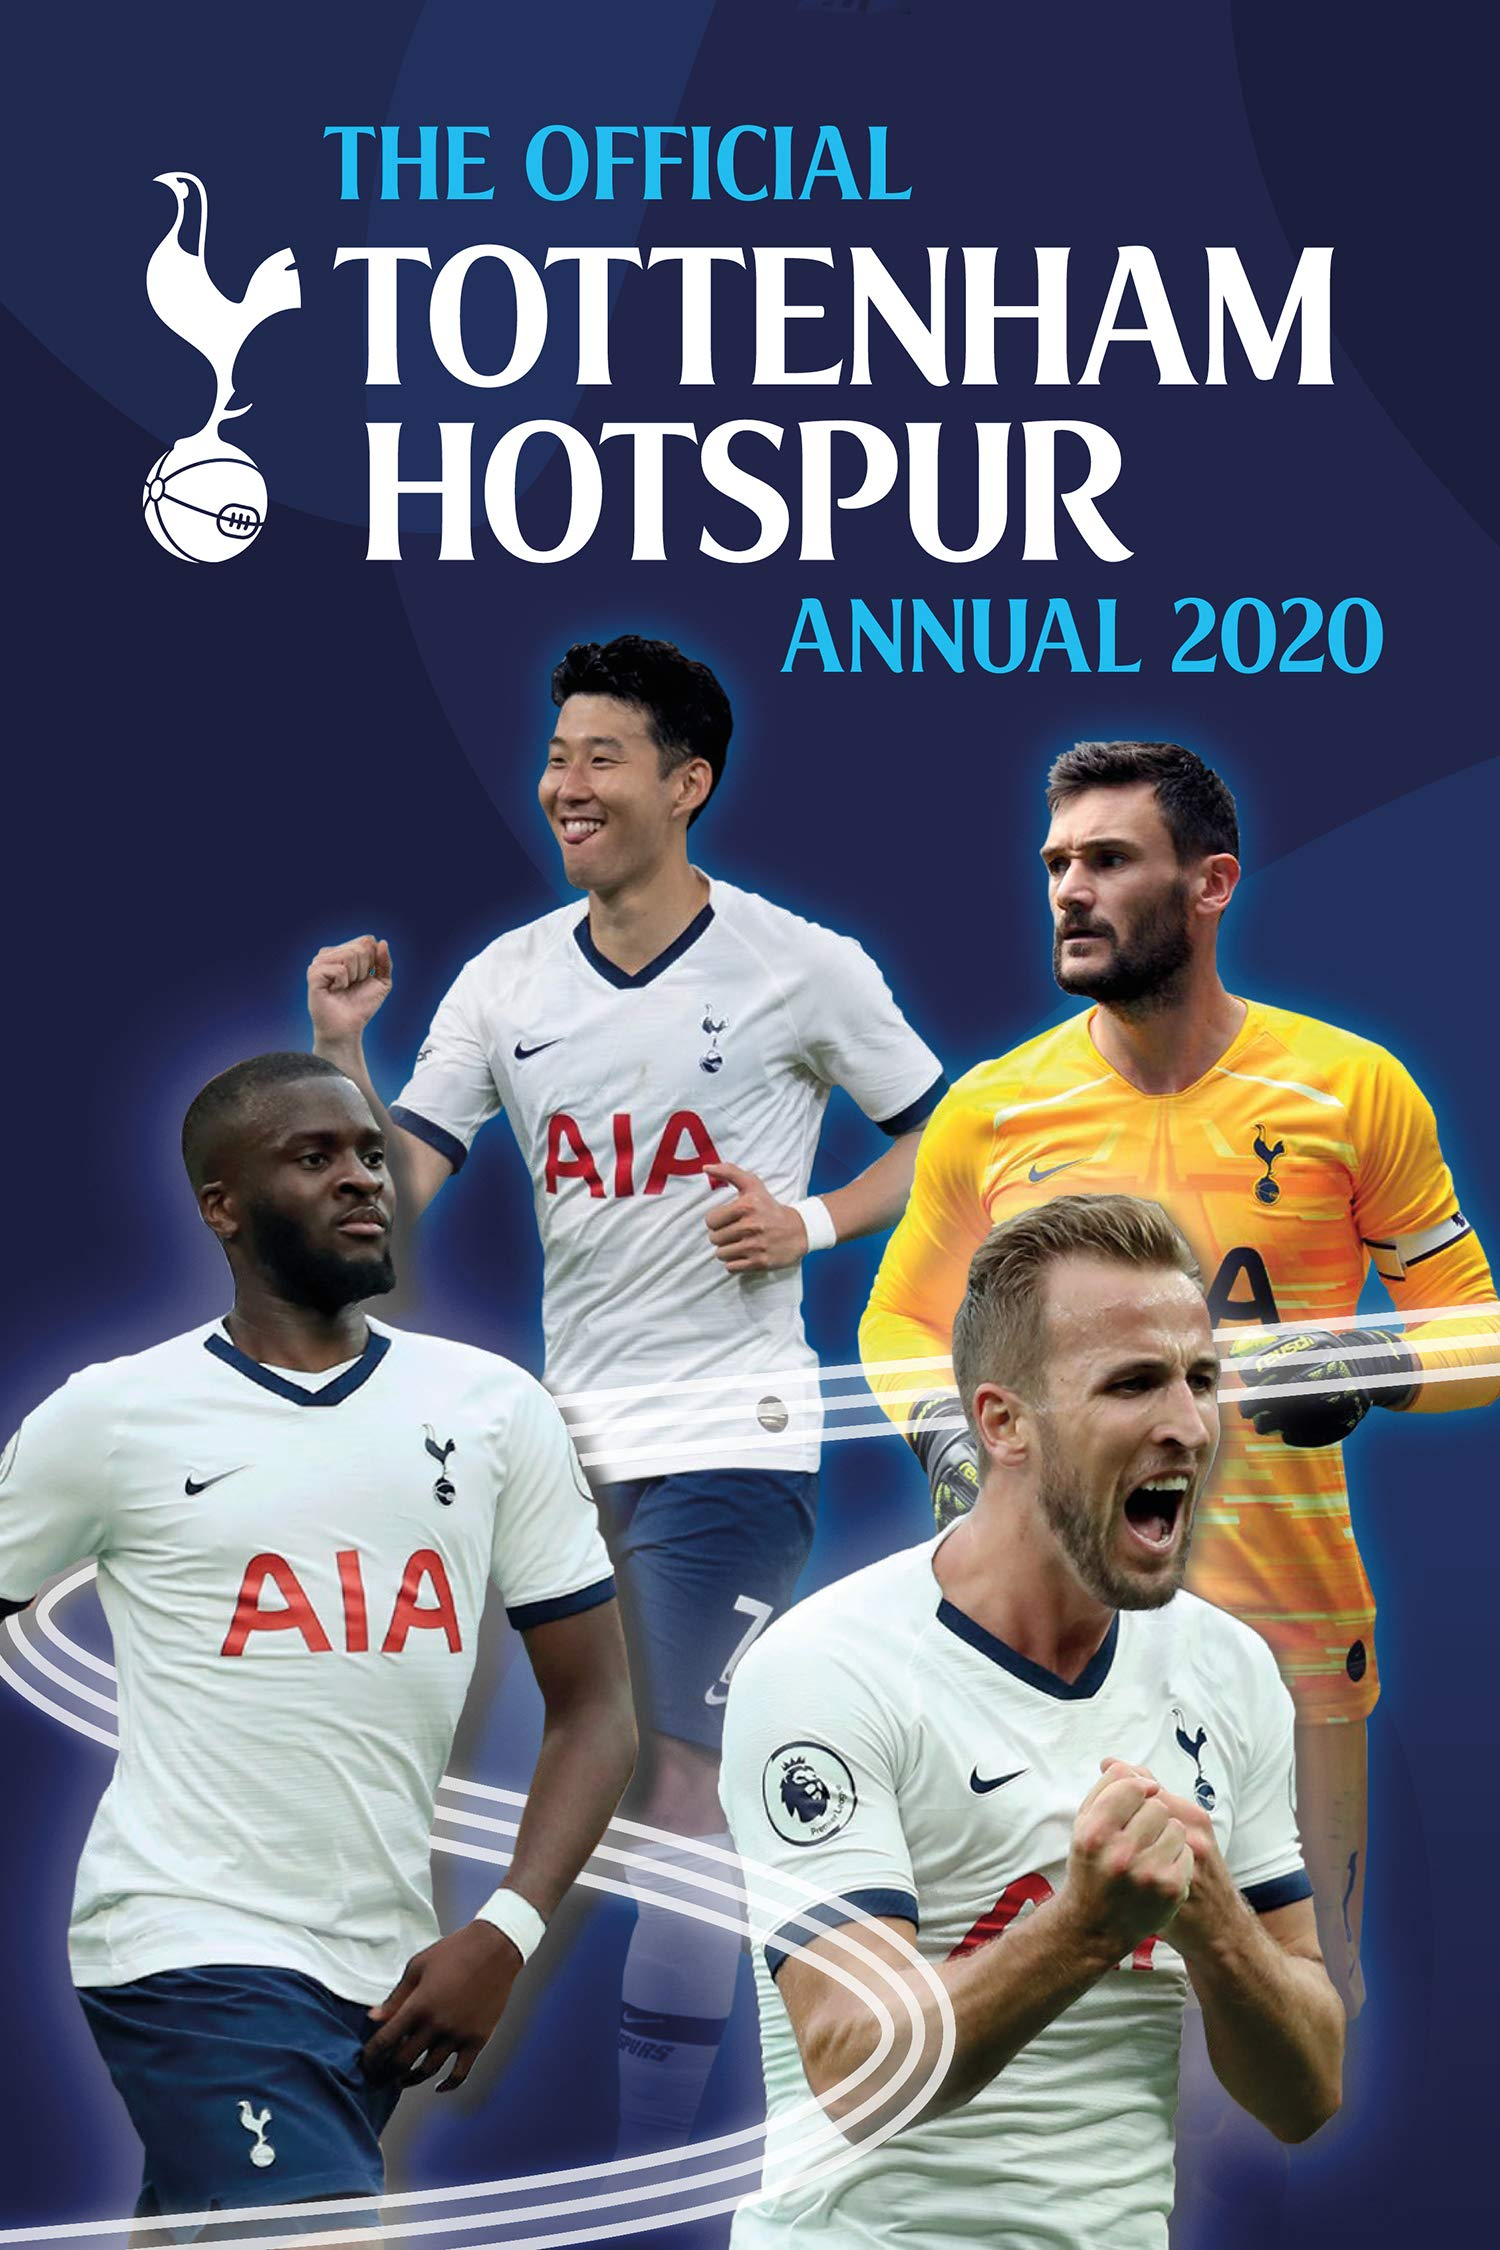 The Official Tottenham Hotspur Annual Amazon co uk Grange Communications Ltd Books